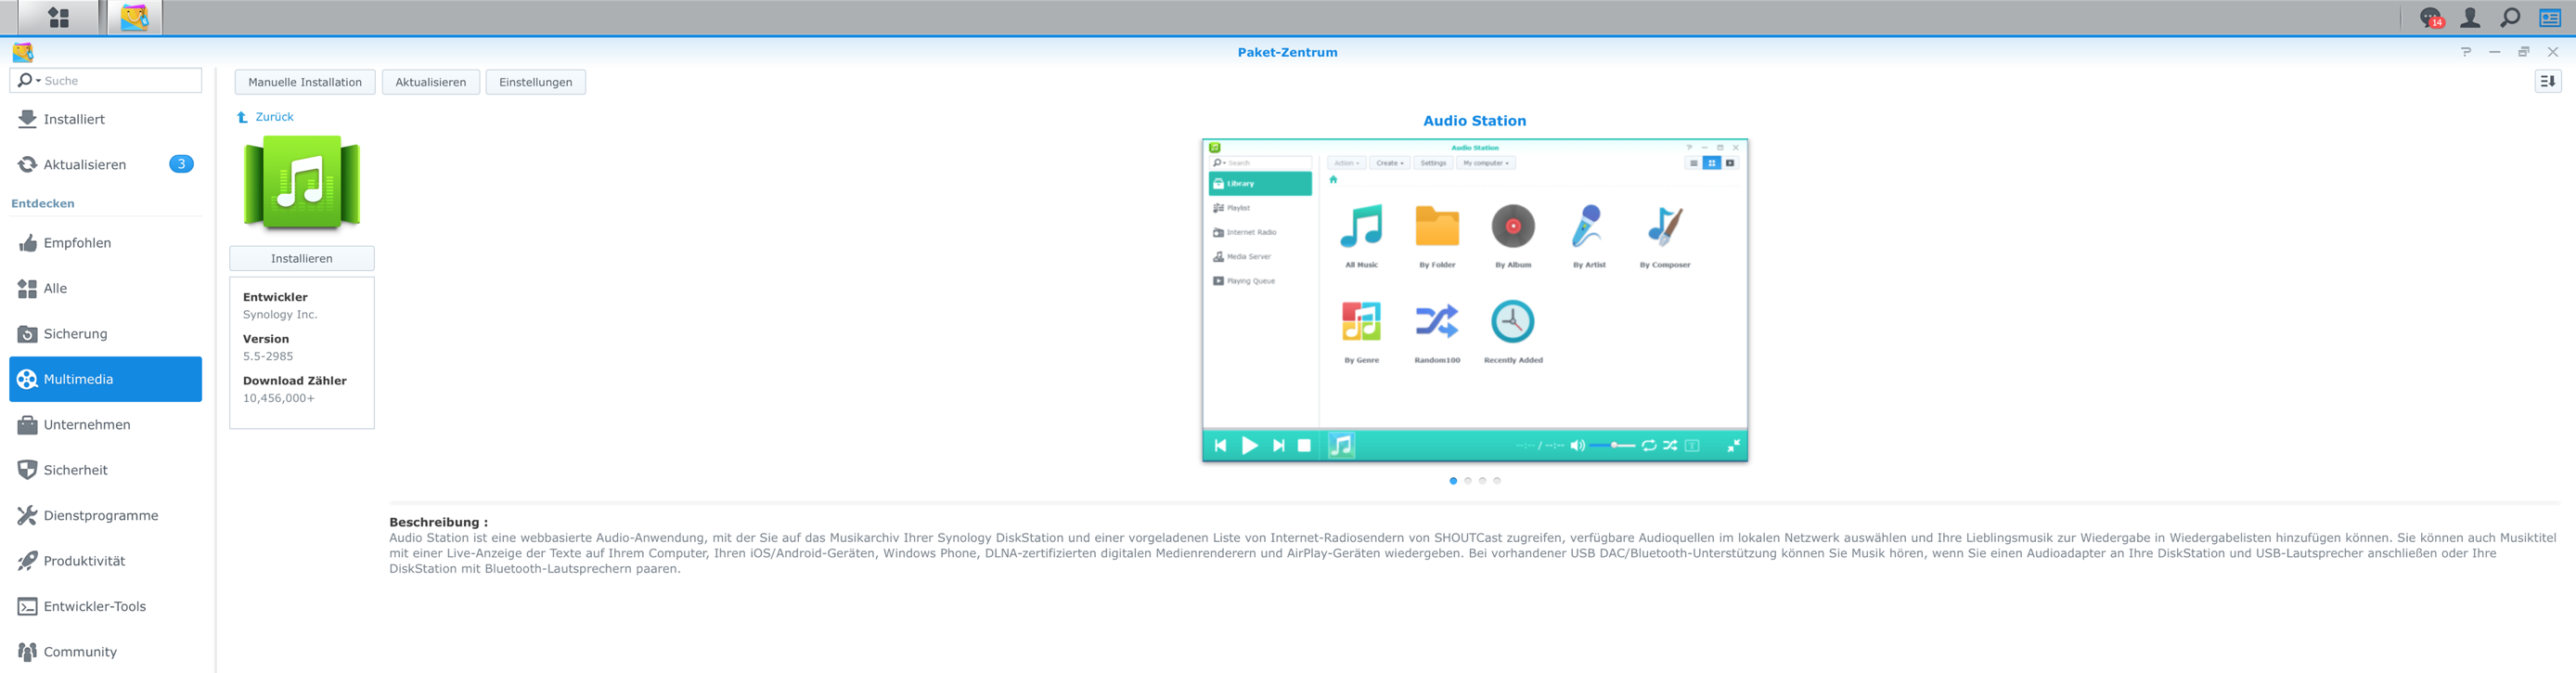 synology_audio_station_tipps1